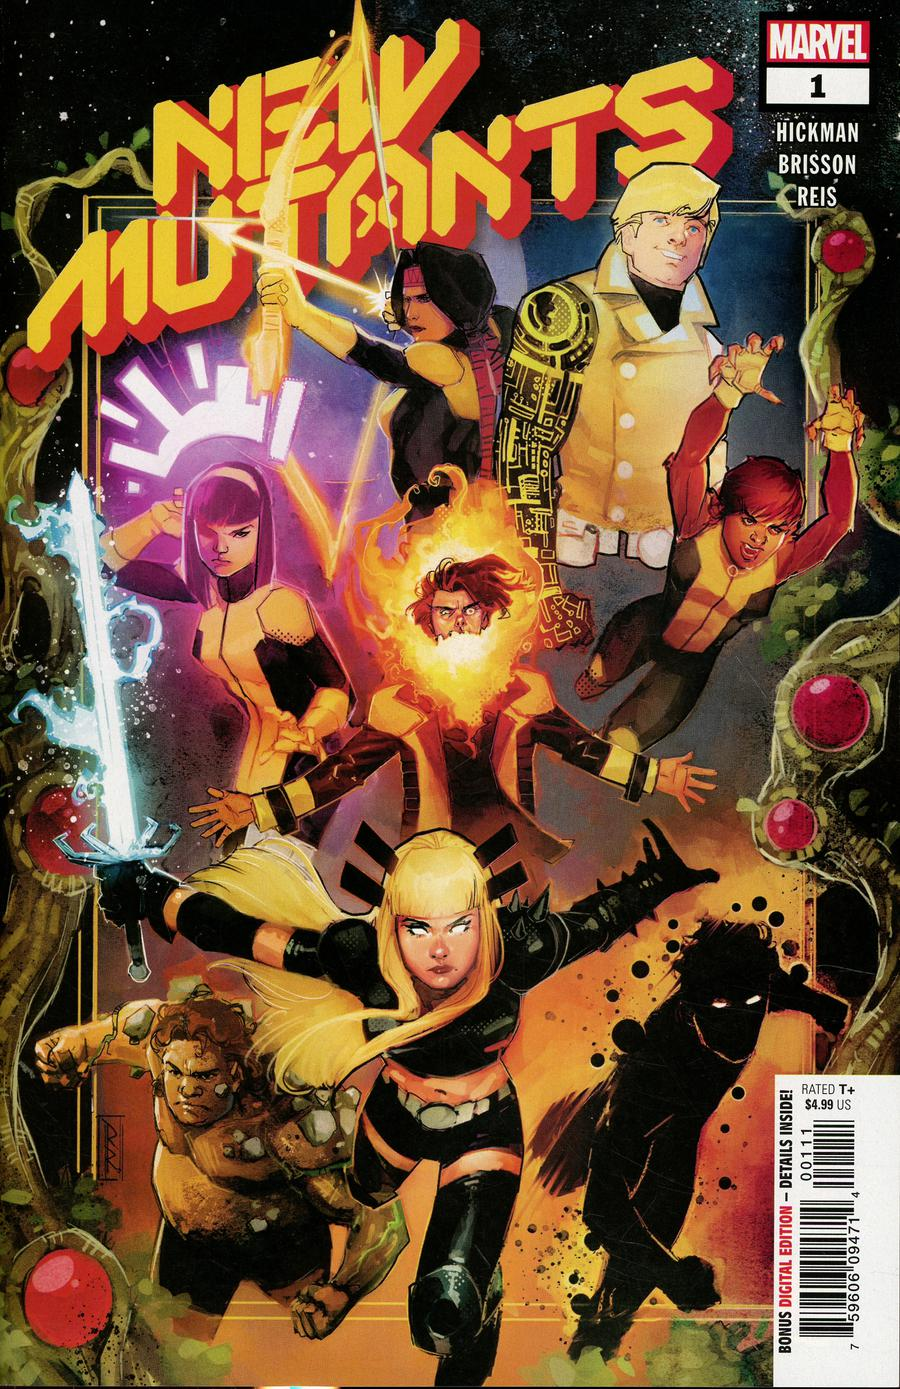 New Mutants Vol 4 #1 Cover A 1st Ptg Regular Rod Reis Cover (Dawn Of X Tie-In)